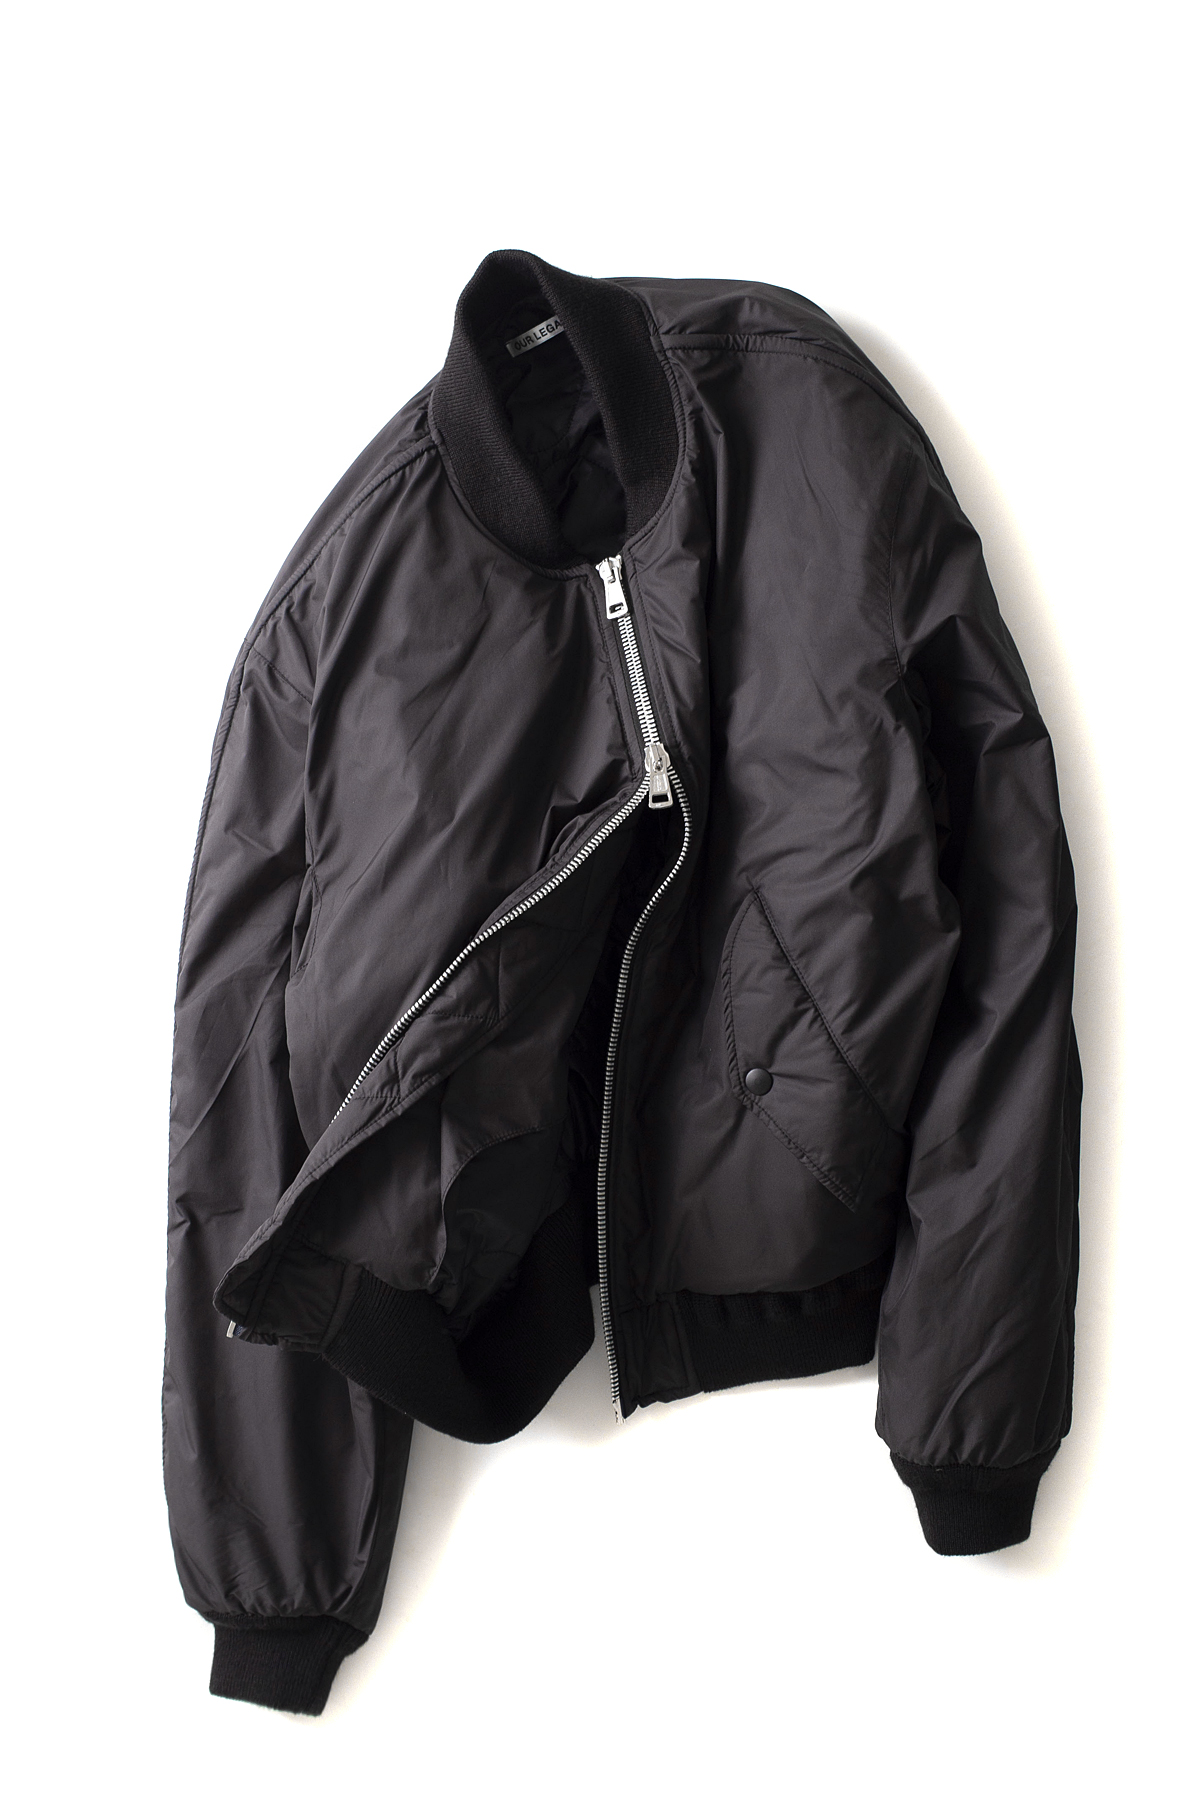 OUR LEGACY : Life Saver Bomber (Black)